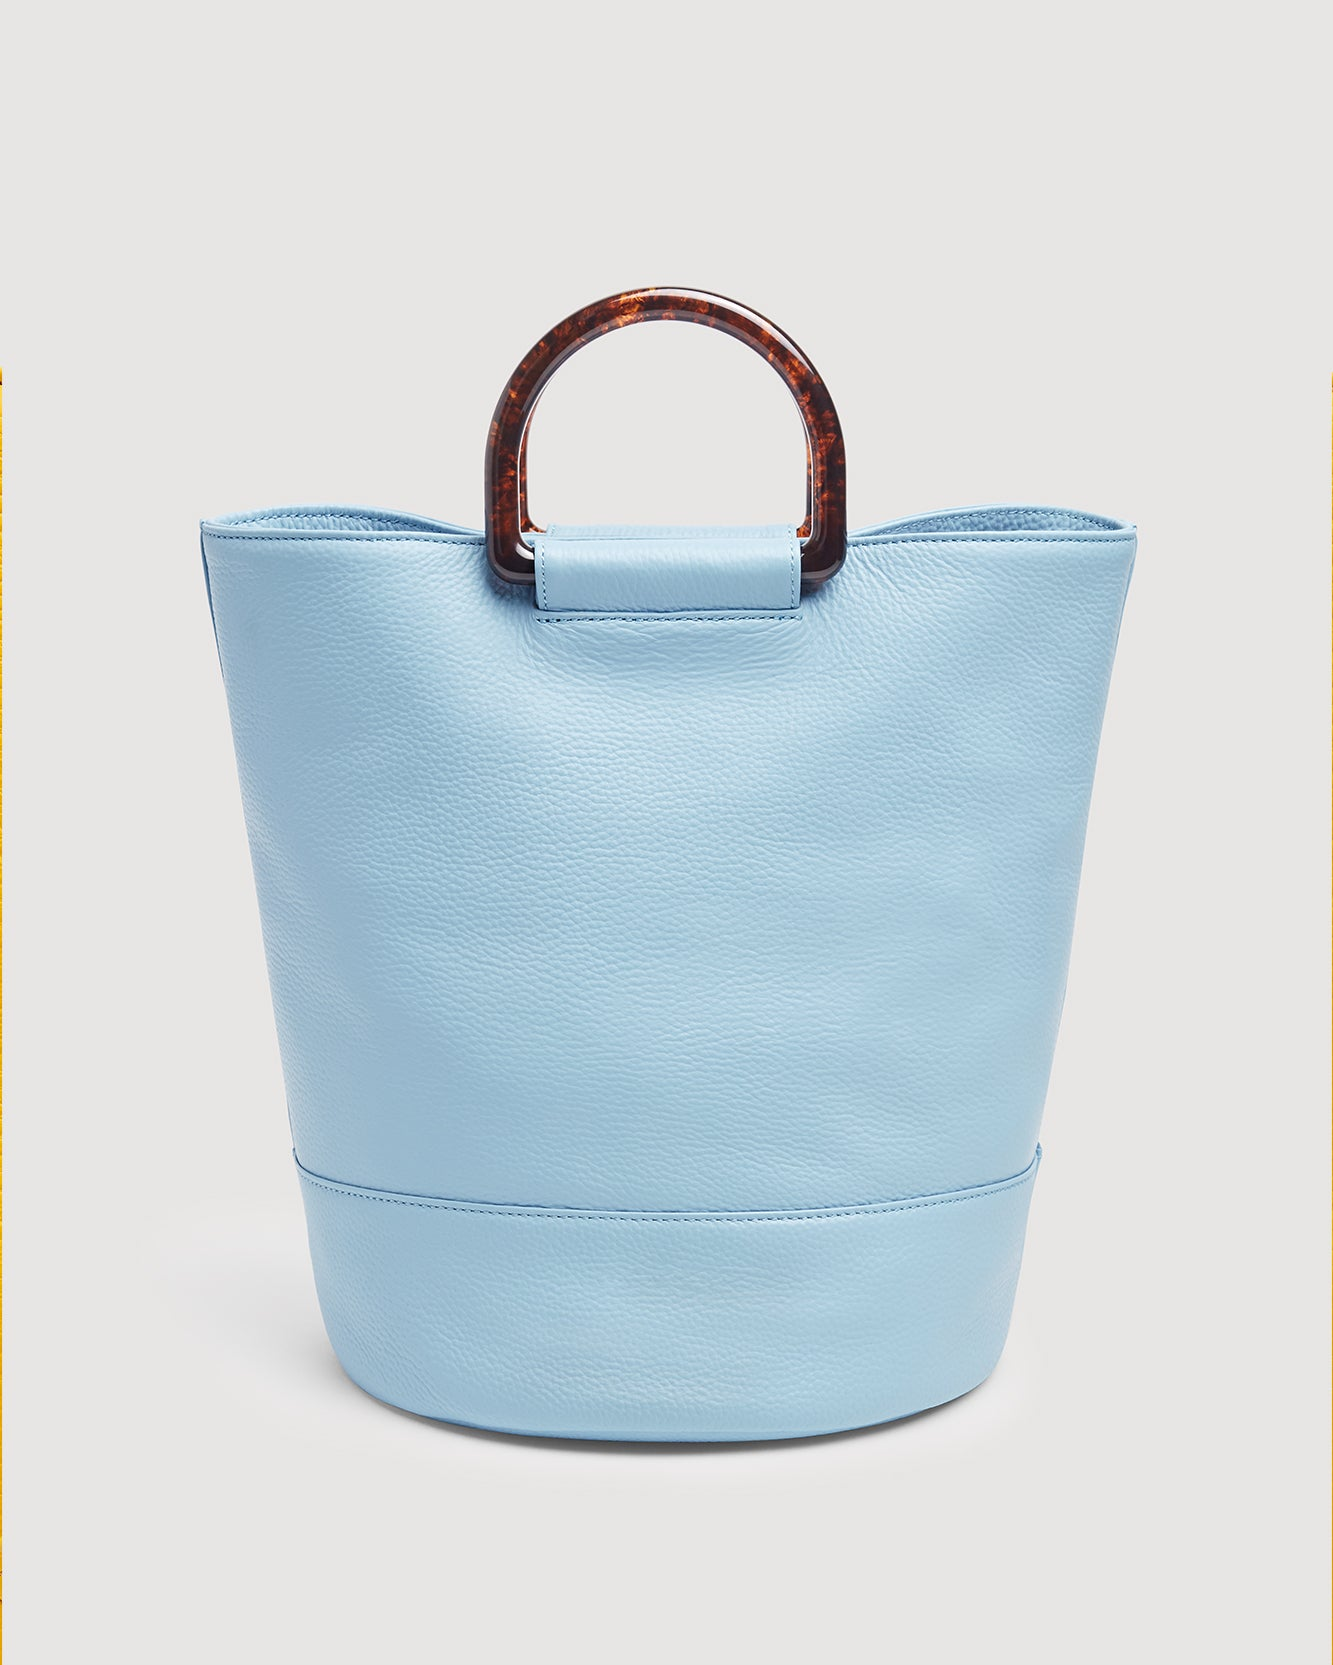 Image of Ring Tote in Cornflower